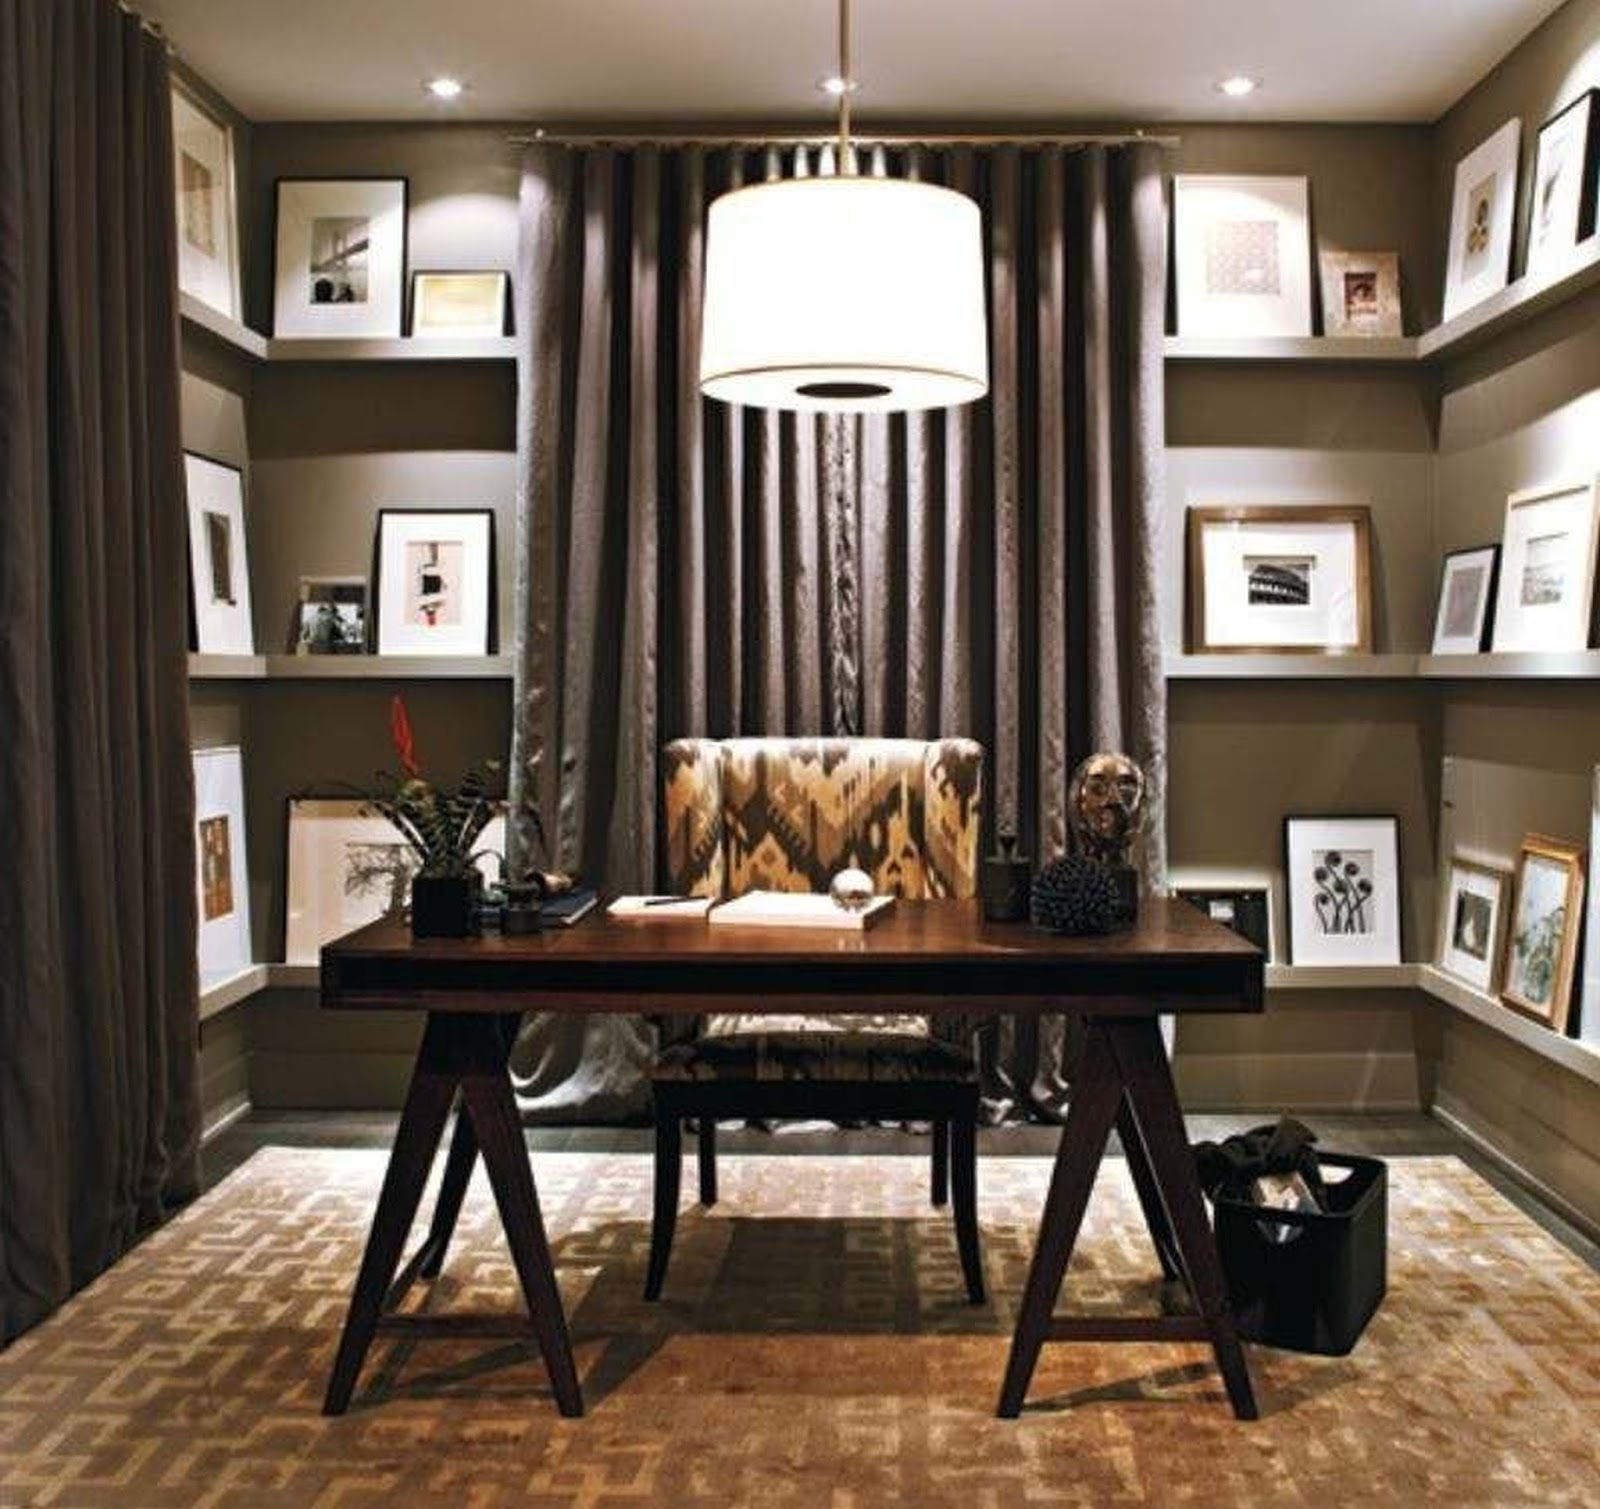 5 Tips How to Decorating an Artistic Home Office ...